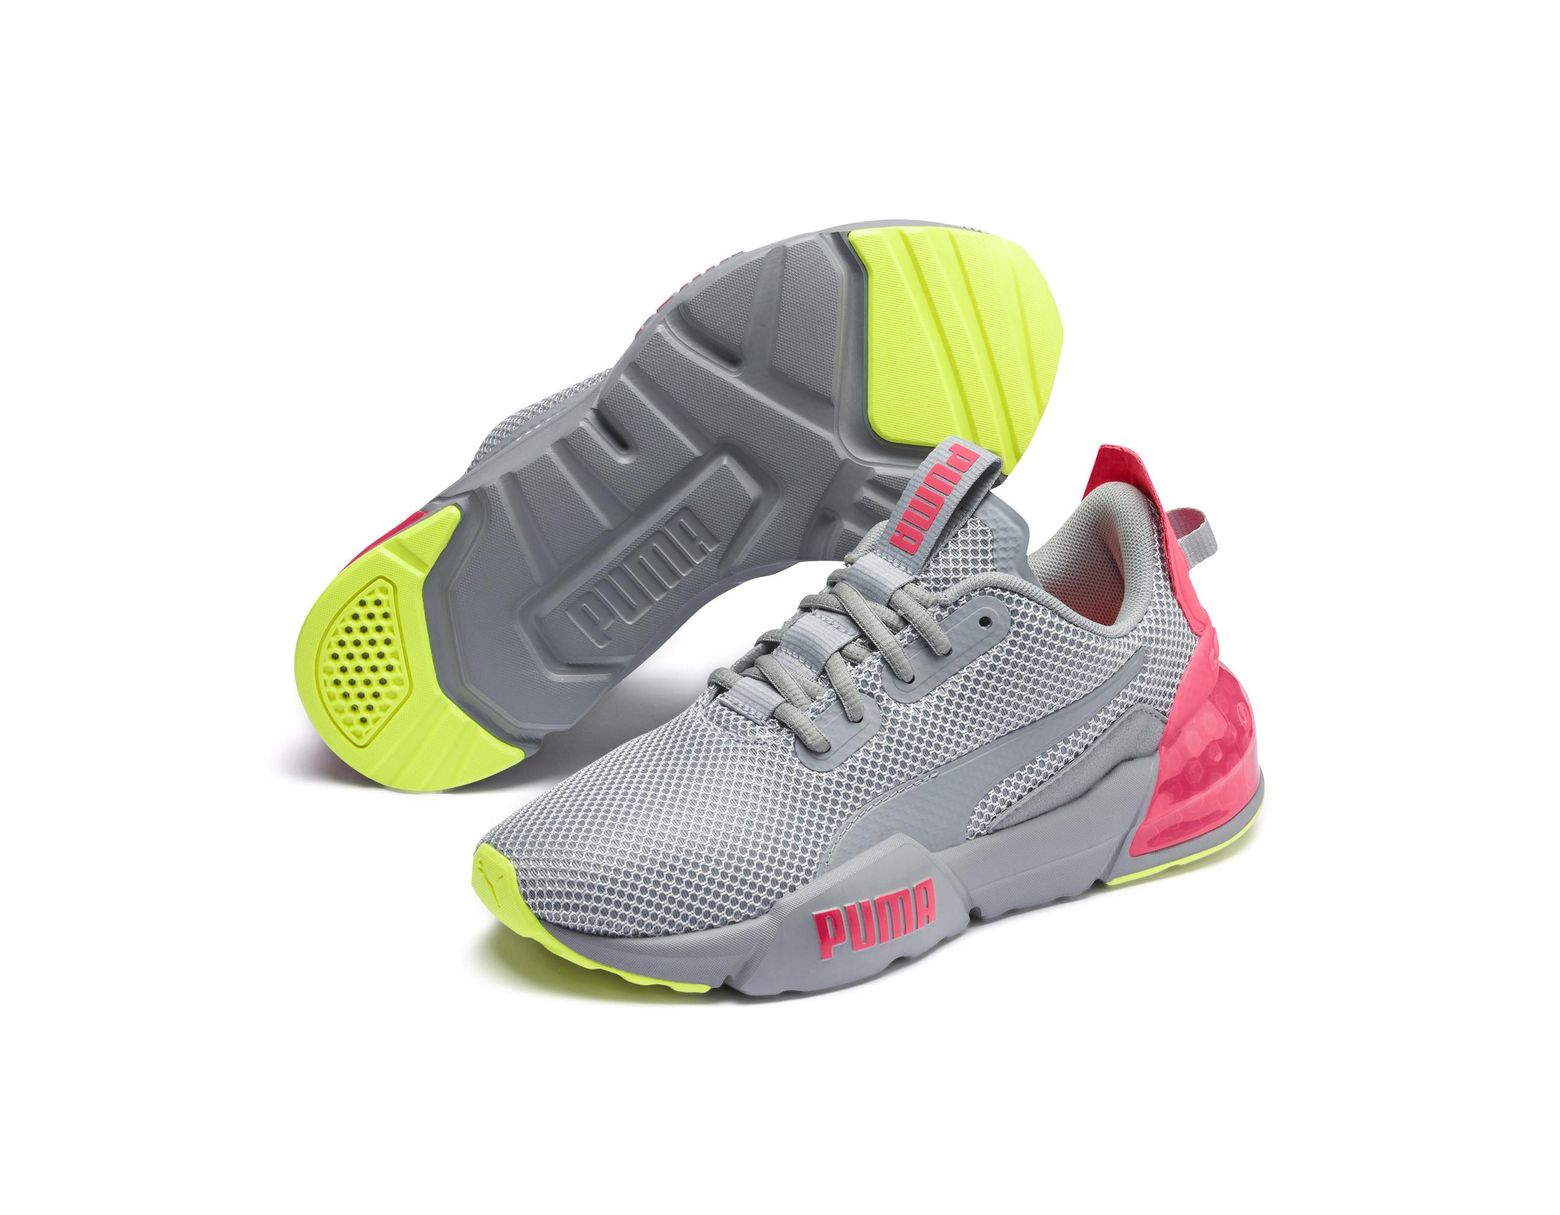 b3681445a2 Cell Phase Women's Training Shoes